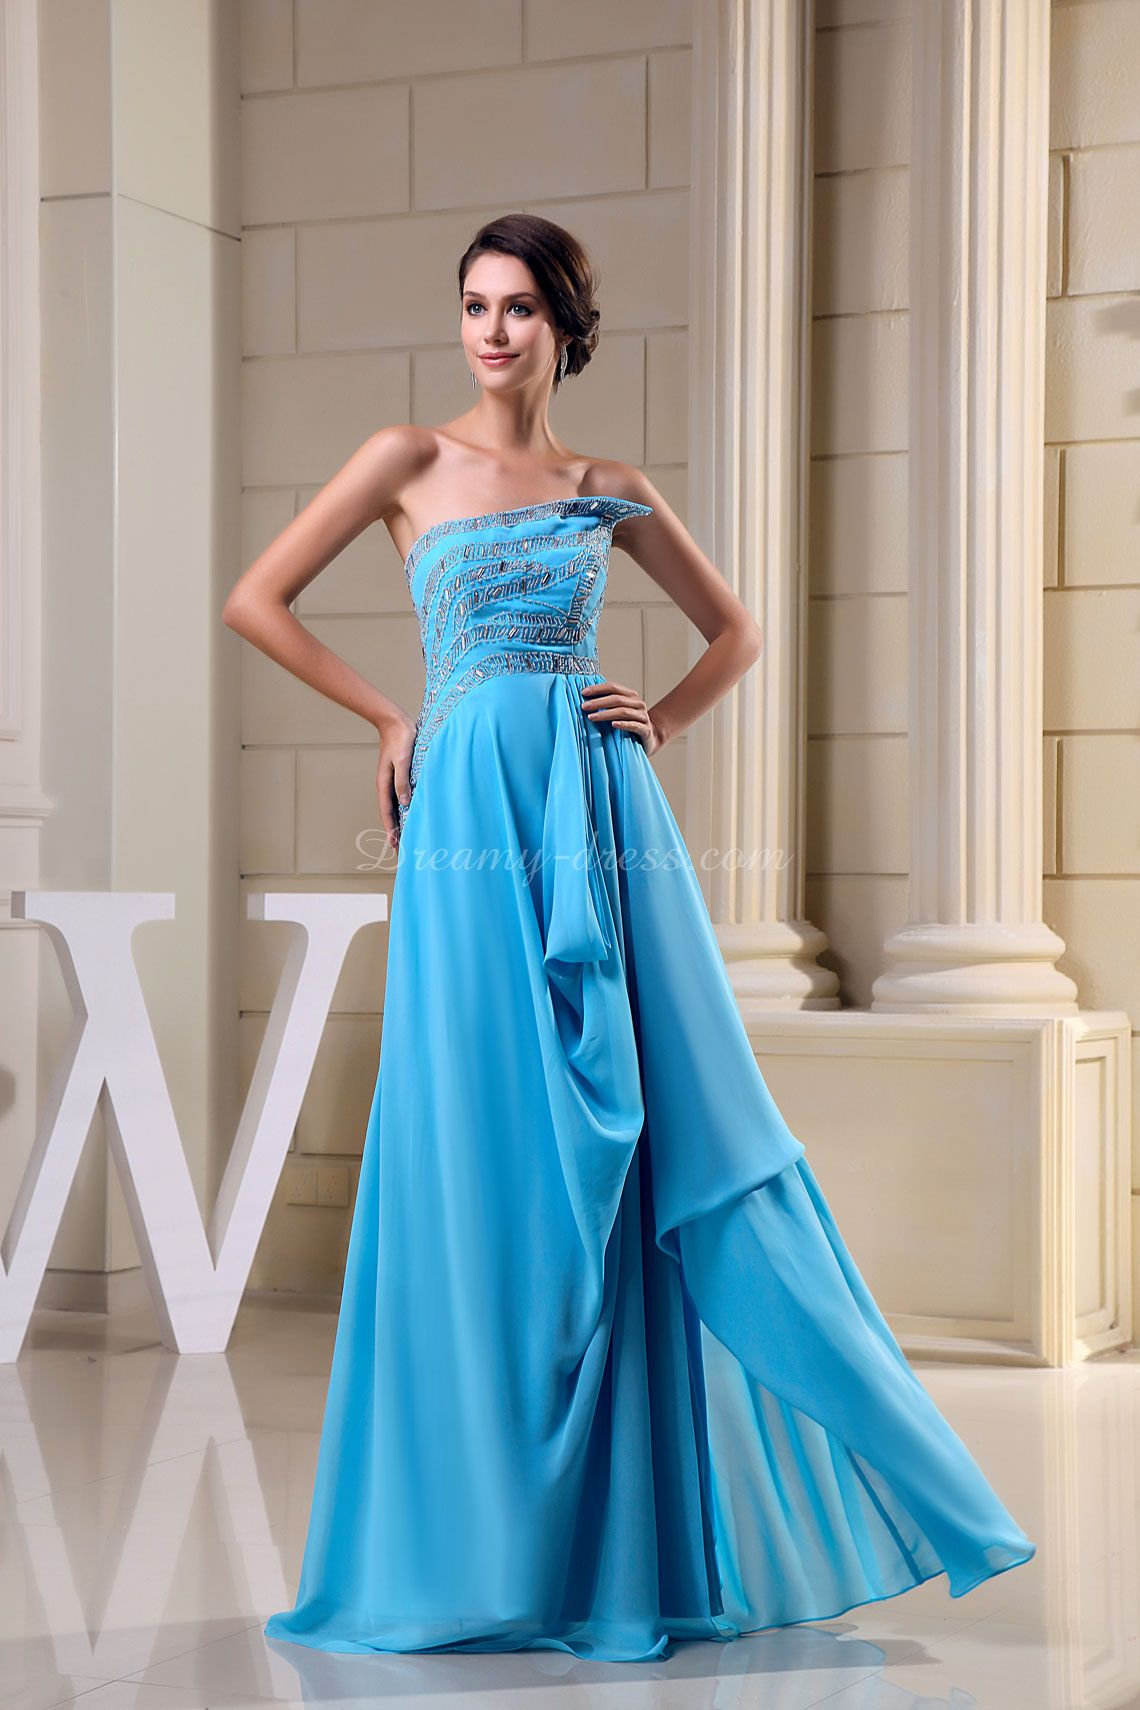 Prom dressprom dressesprom dressprom dresses sorry something